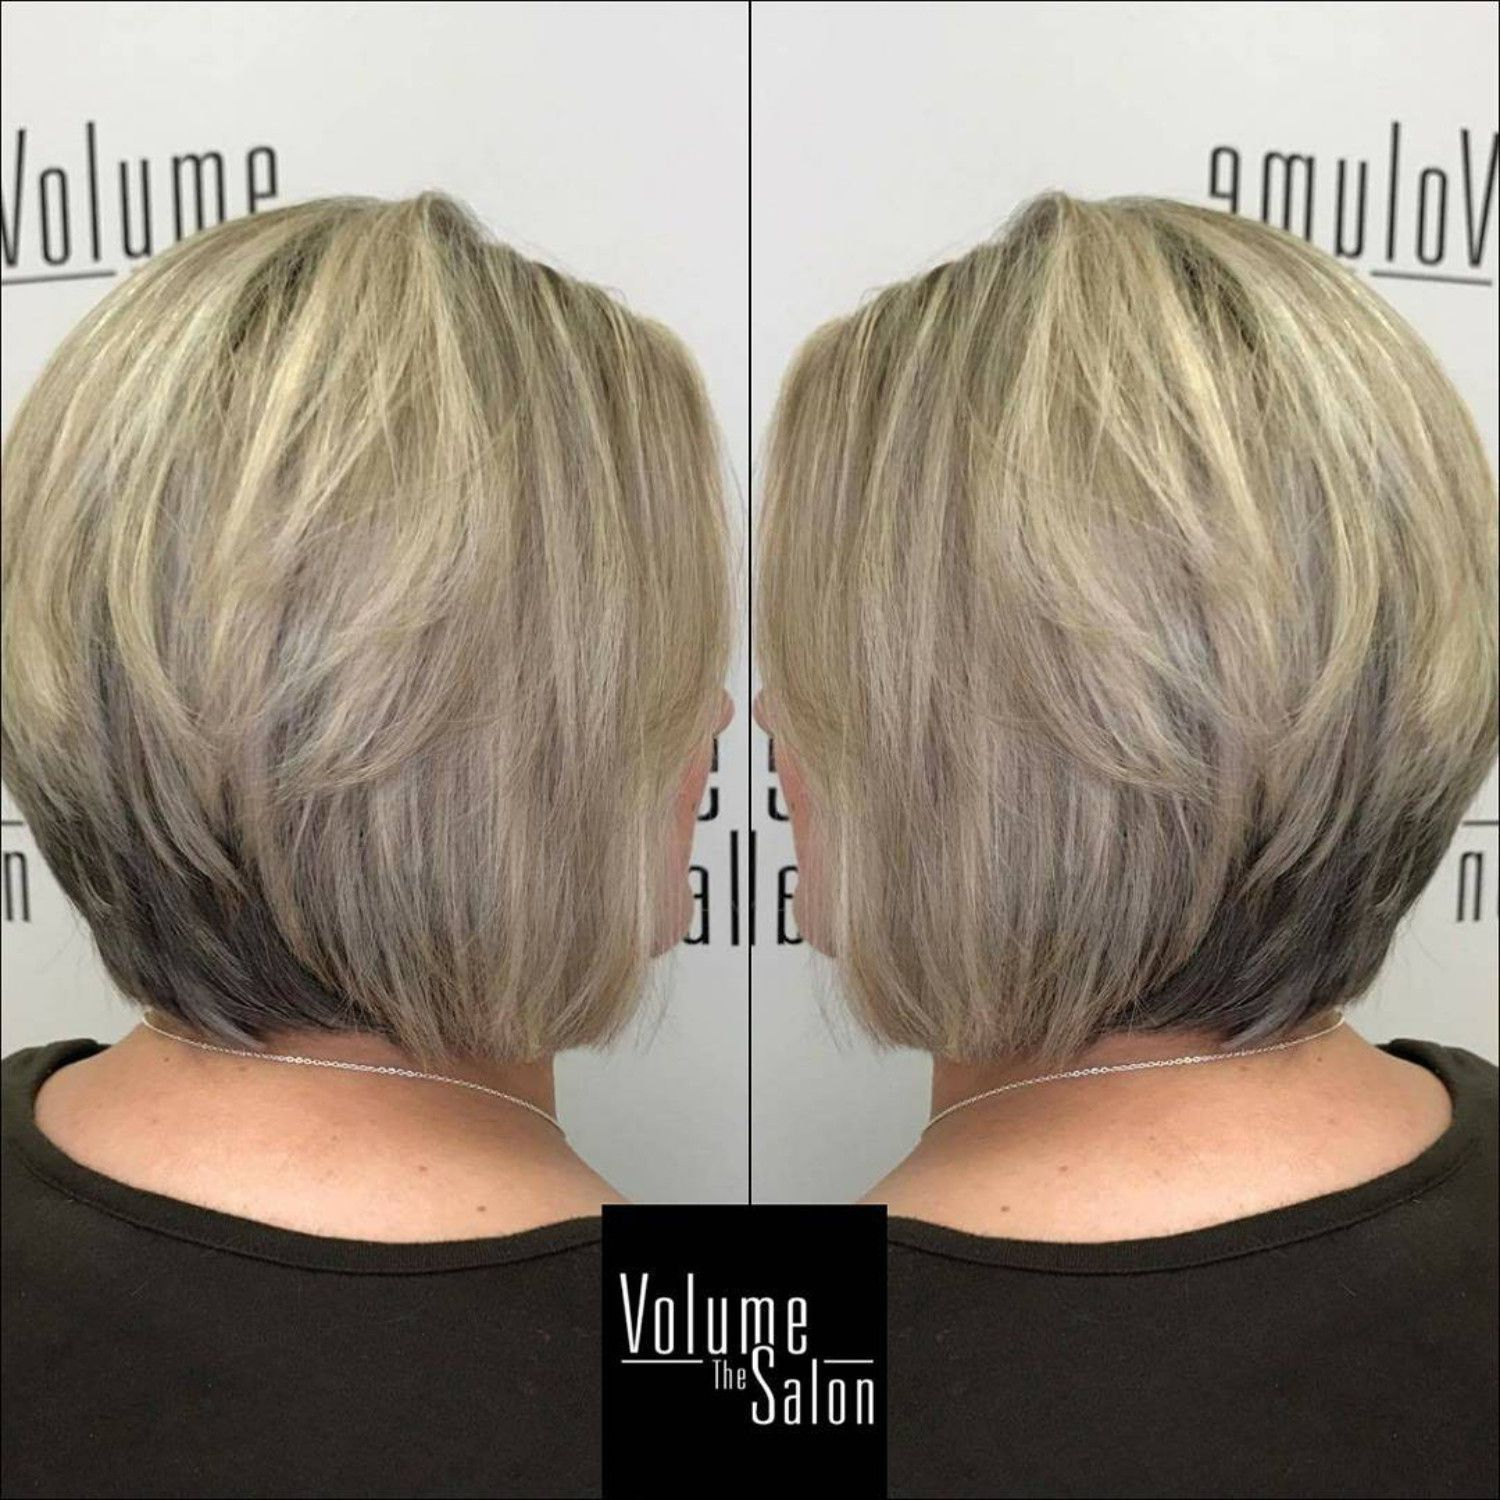 Short haircuts for men over 60  classy and simple short hairstyles for women over  in